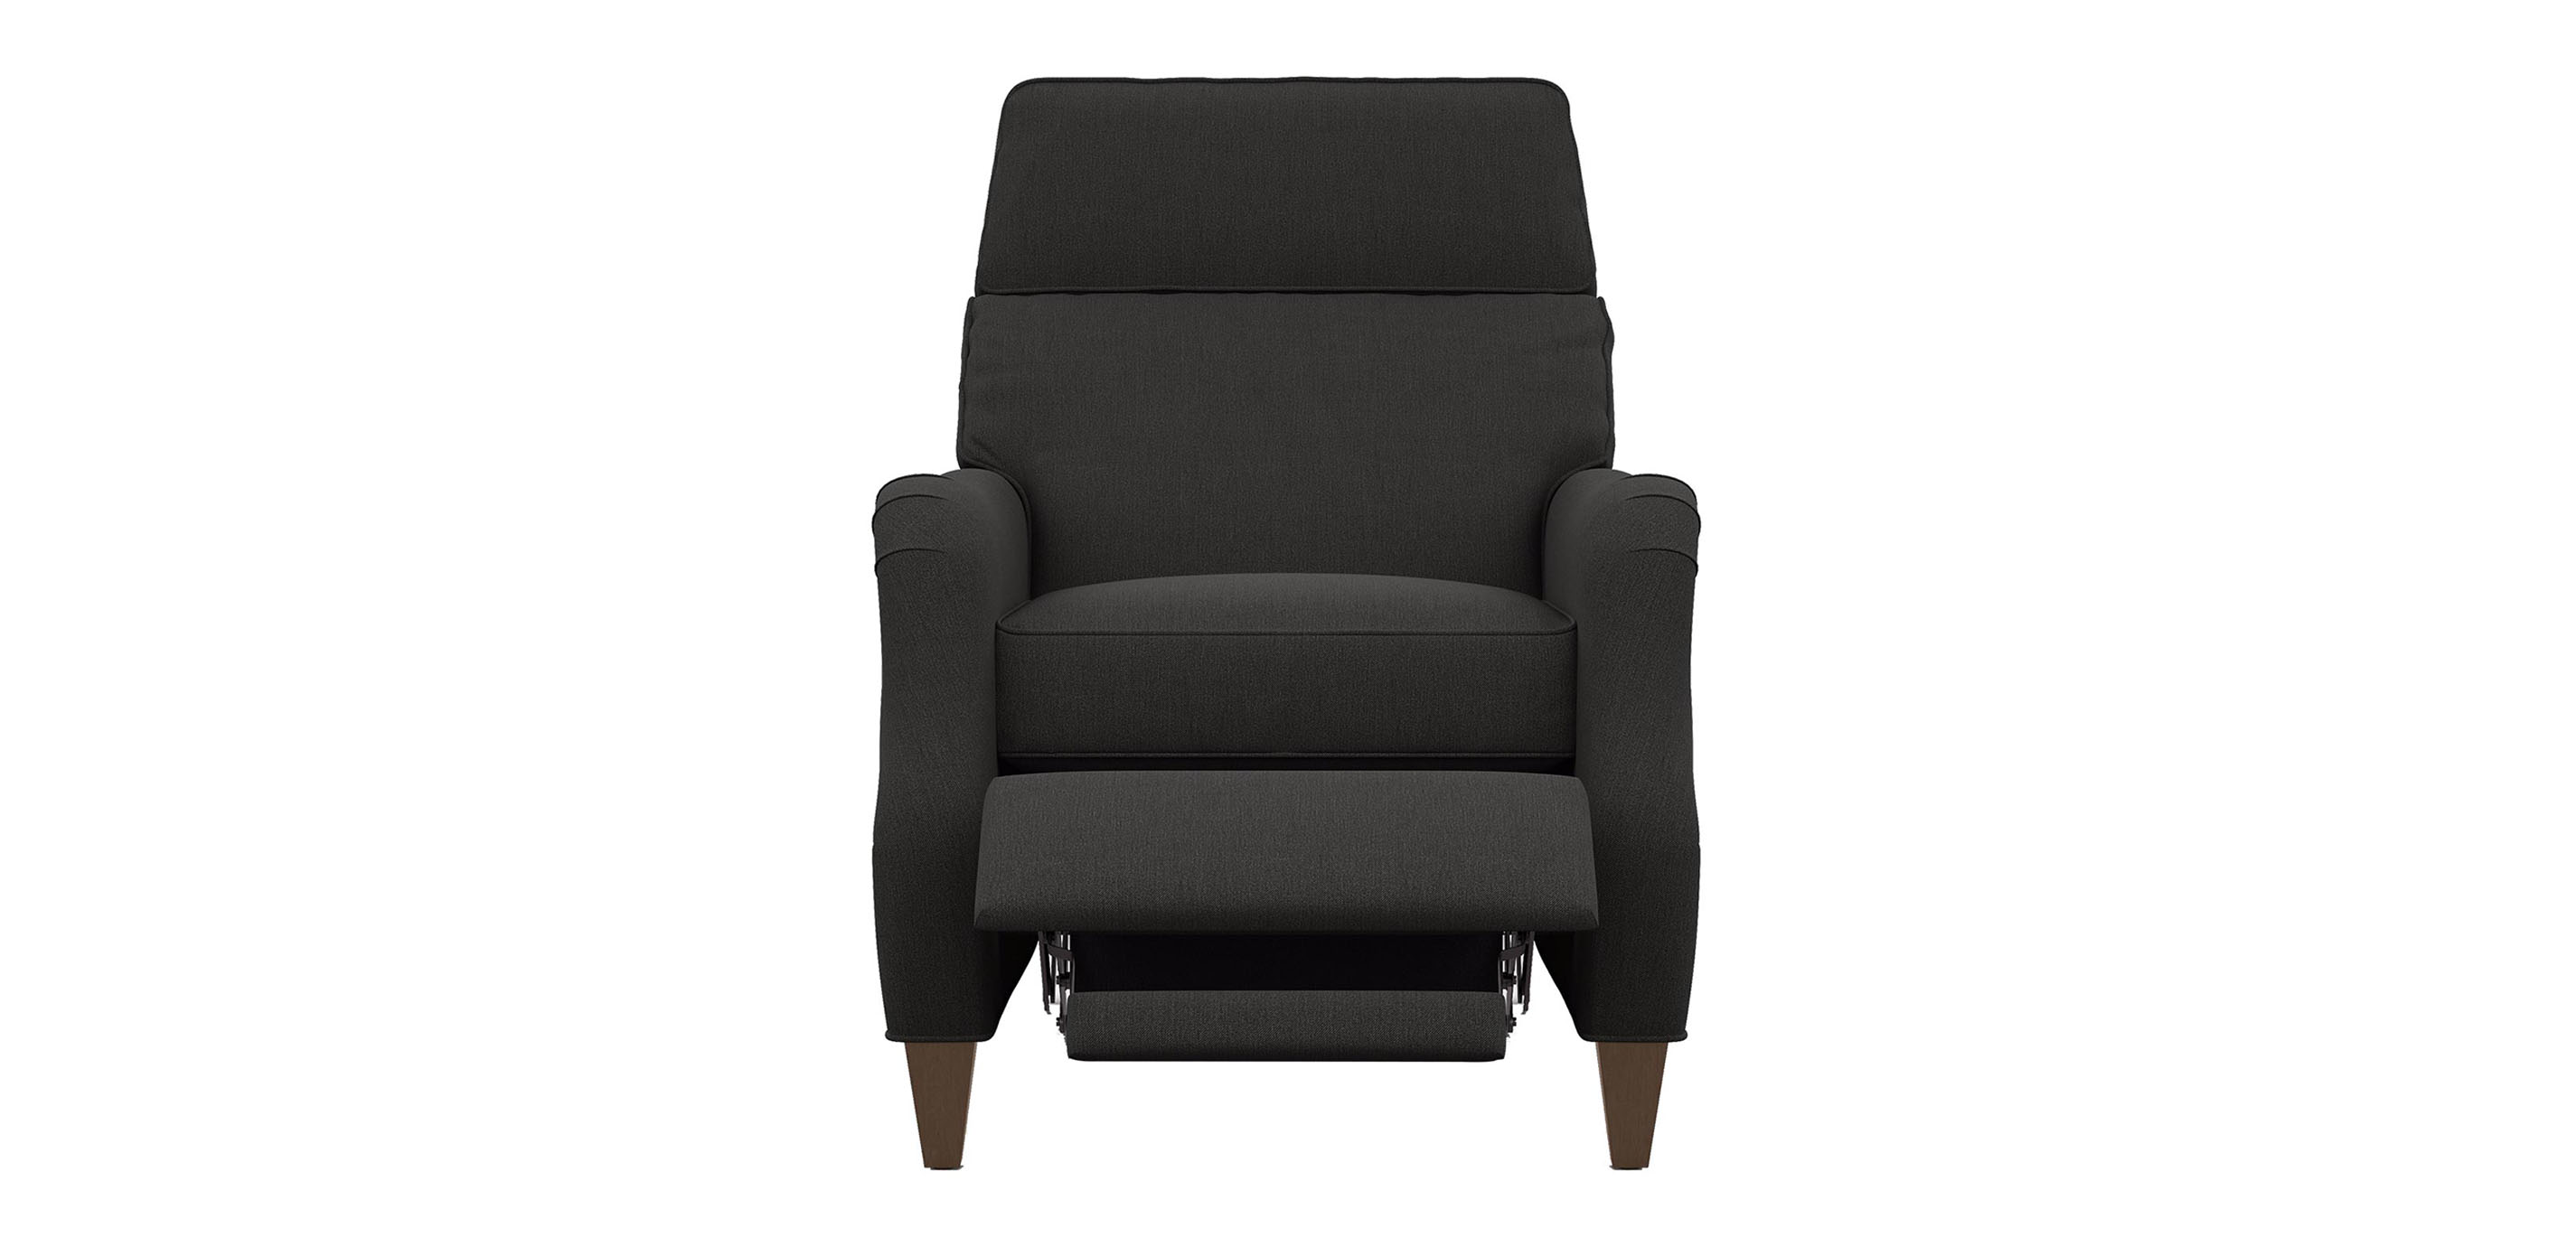 ethan allen recliners chairs indoor rocking chair aiden recliner and